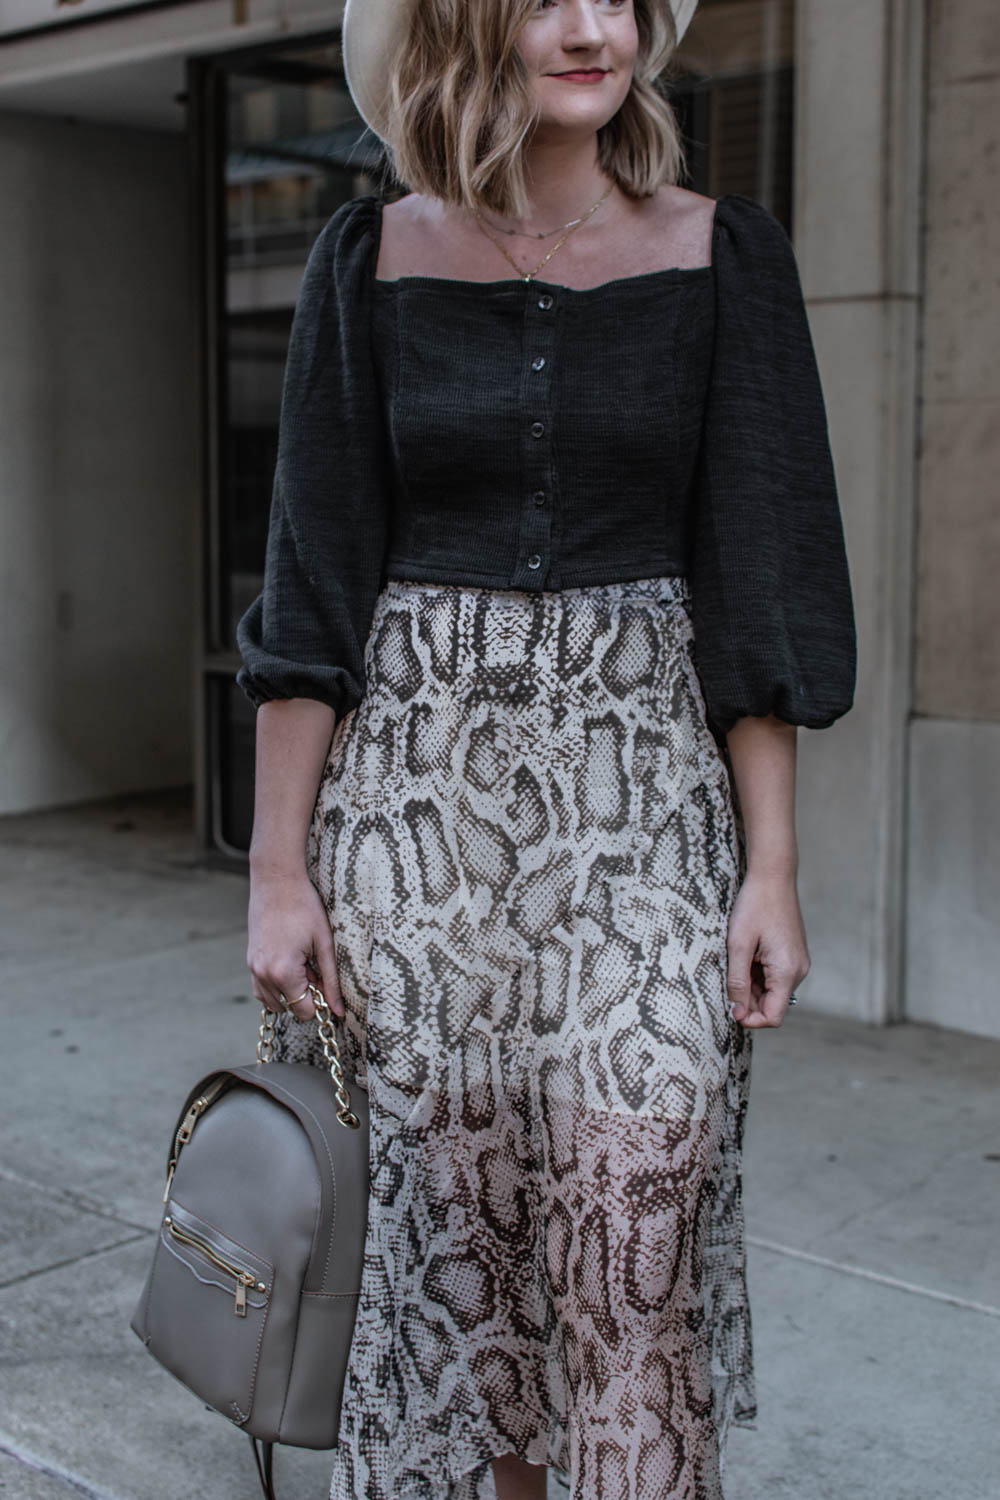 Holiday Shopping Tips + Wearing wearNYLA cropped top with snakeskin midi skirt